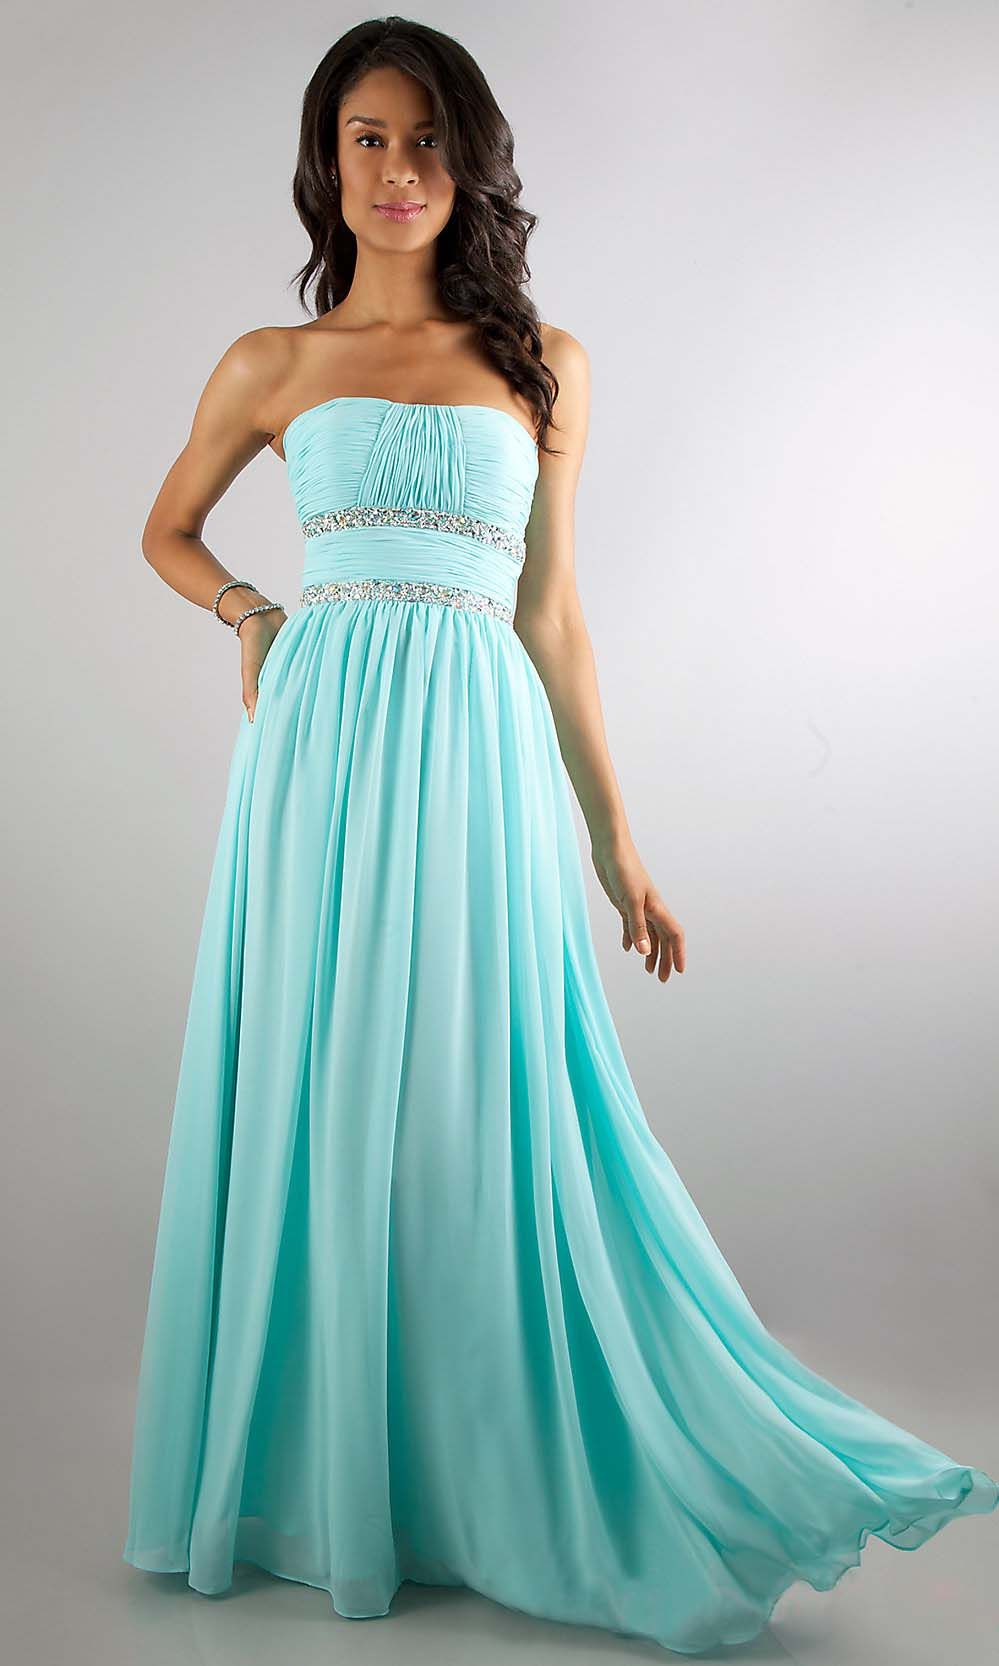 Tiffany Prom Dresses 2015